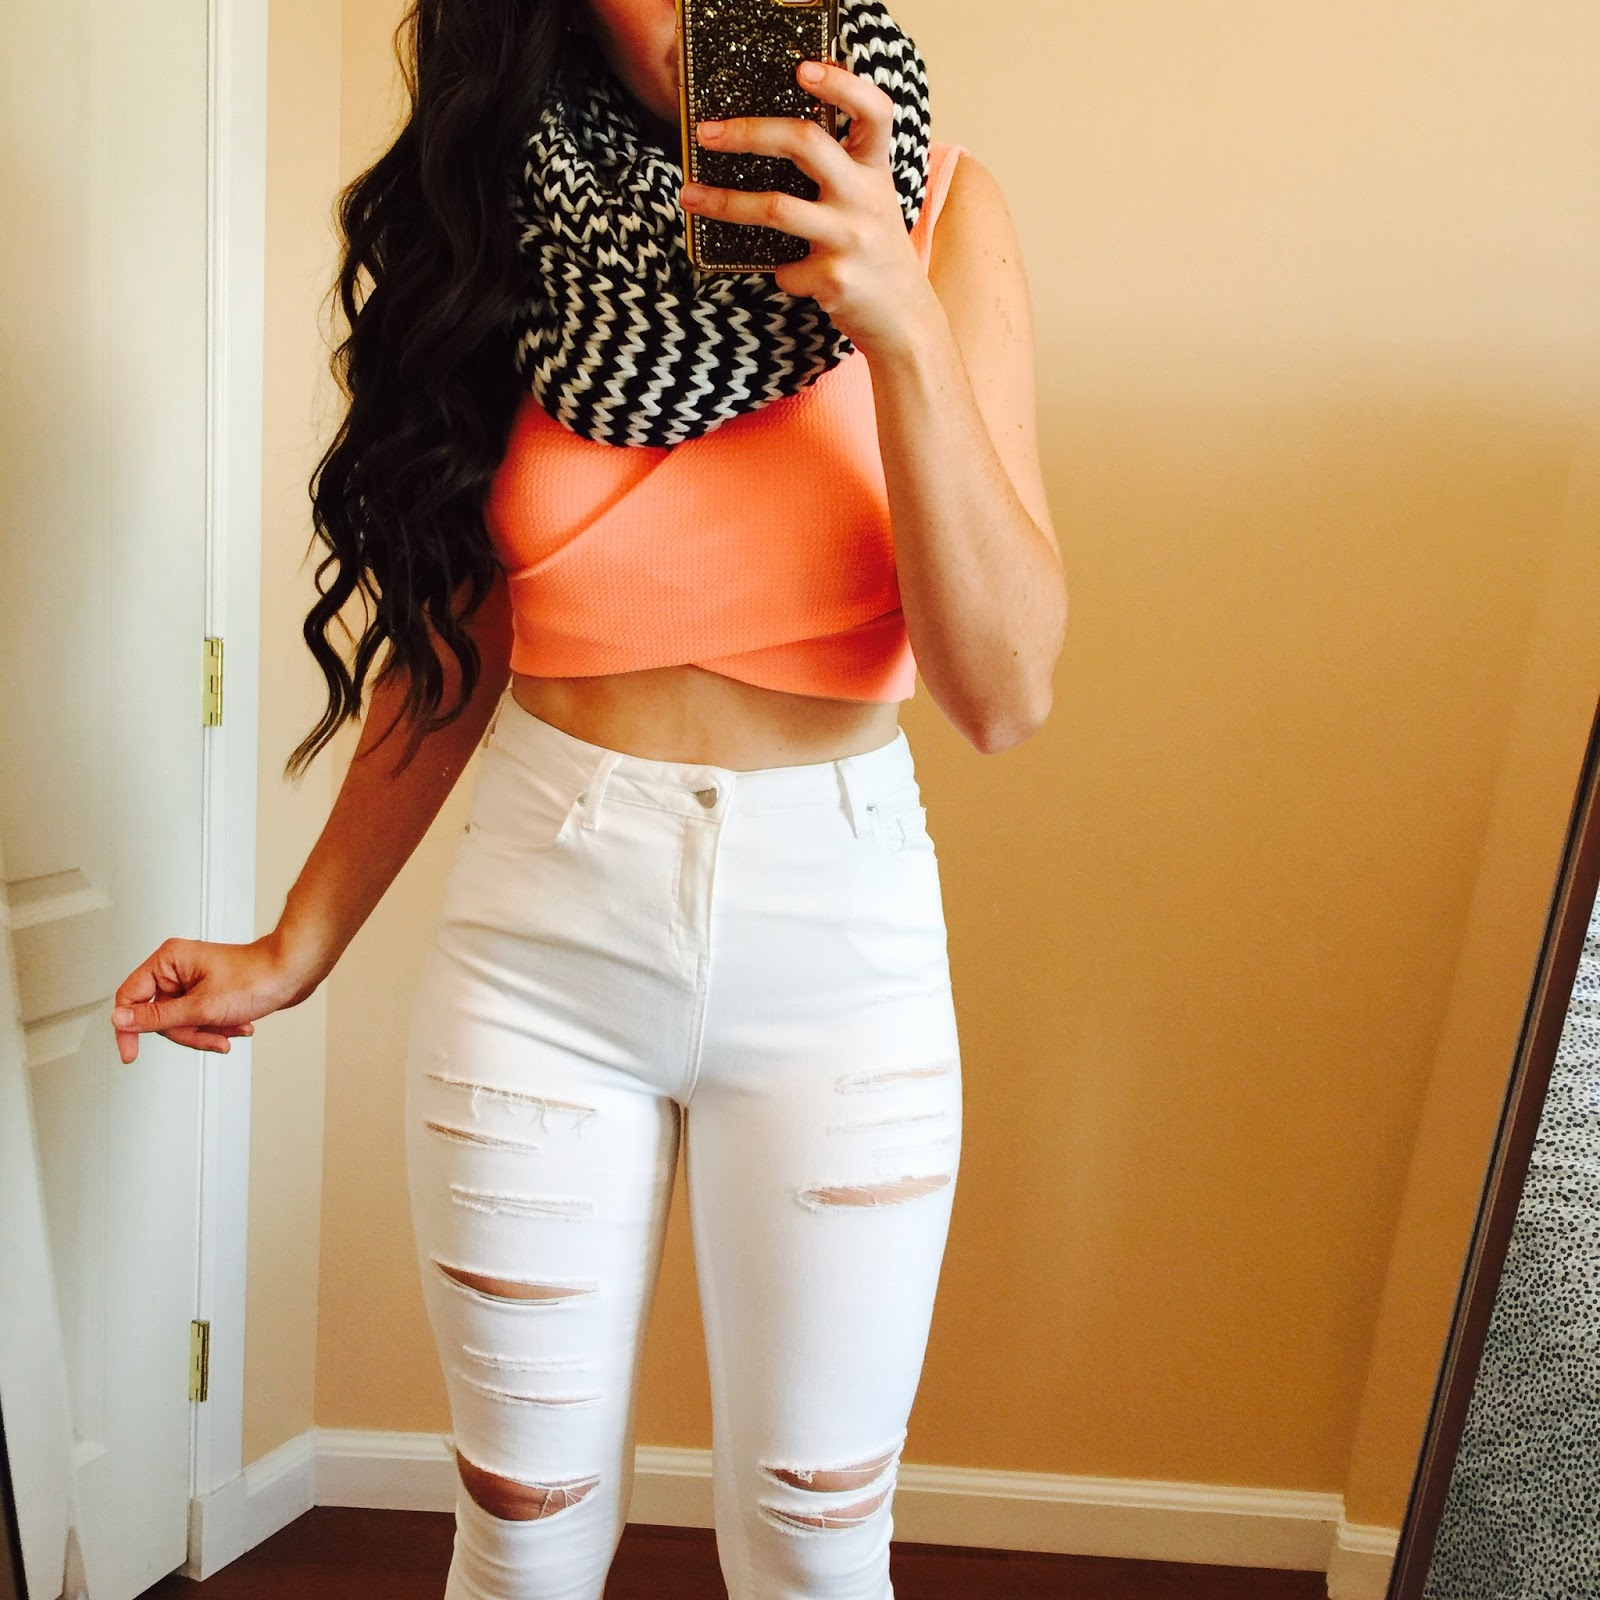 lane201 peach crop top, lane201 boutique, lane 201 peach crop top, zig zag crop top, jamie jeans from nordstrom, Moto 'Jamie' Ripped Skinny Jeans, houndstooth scarf, high waisted pants, white jeans outfit,